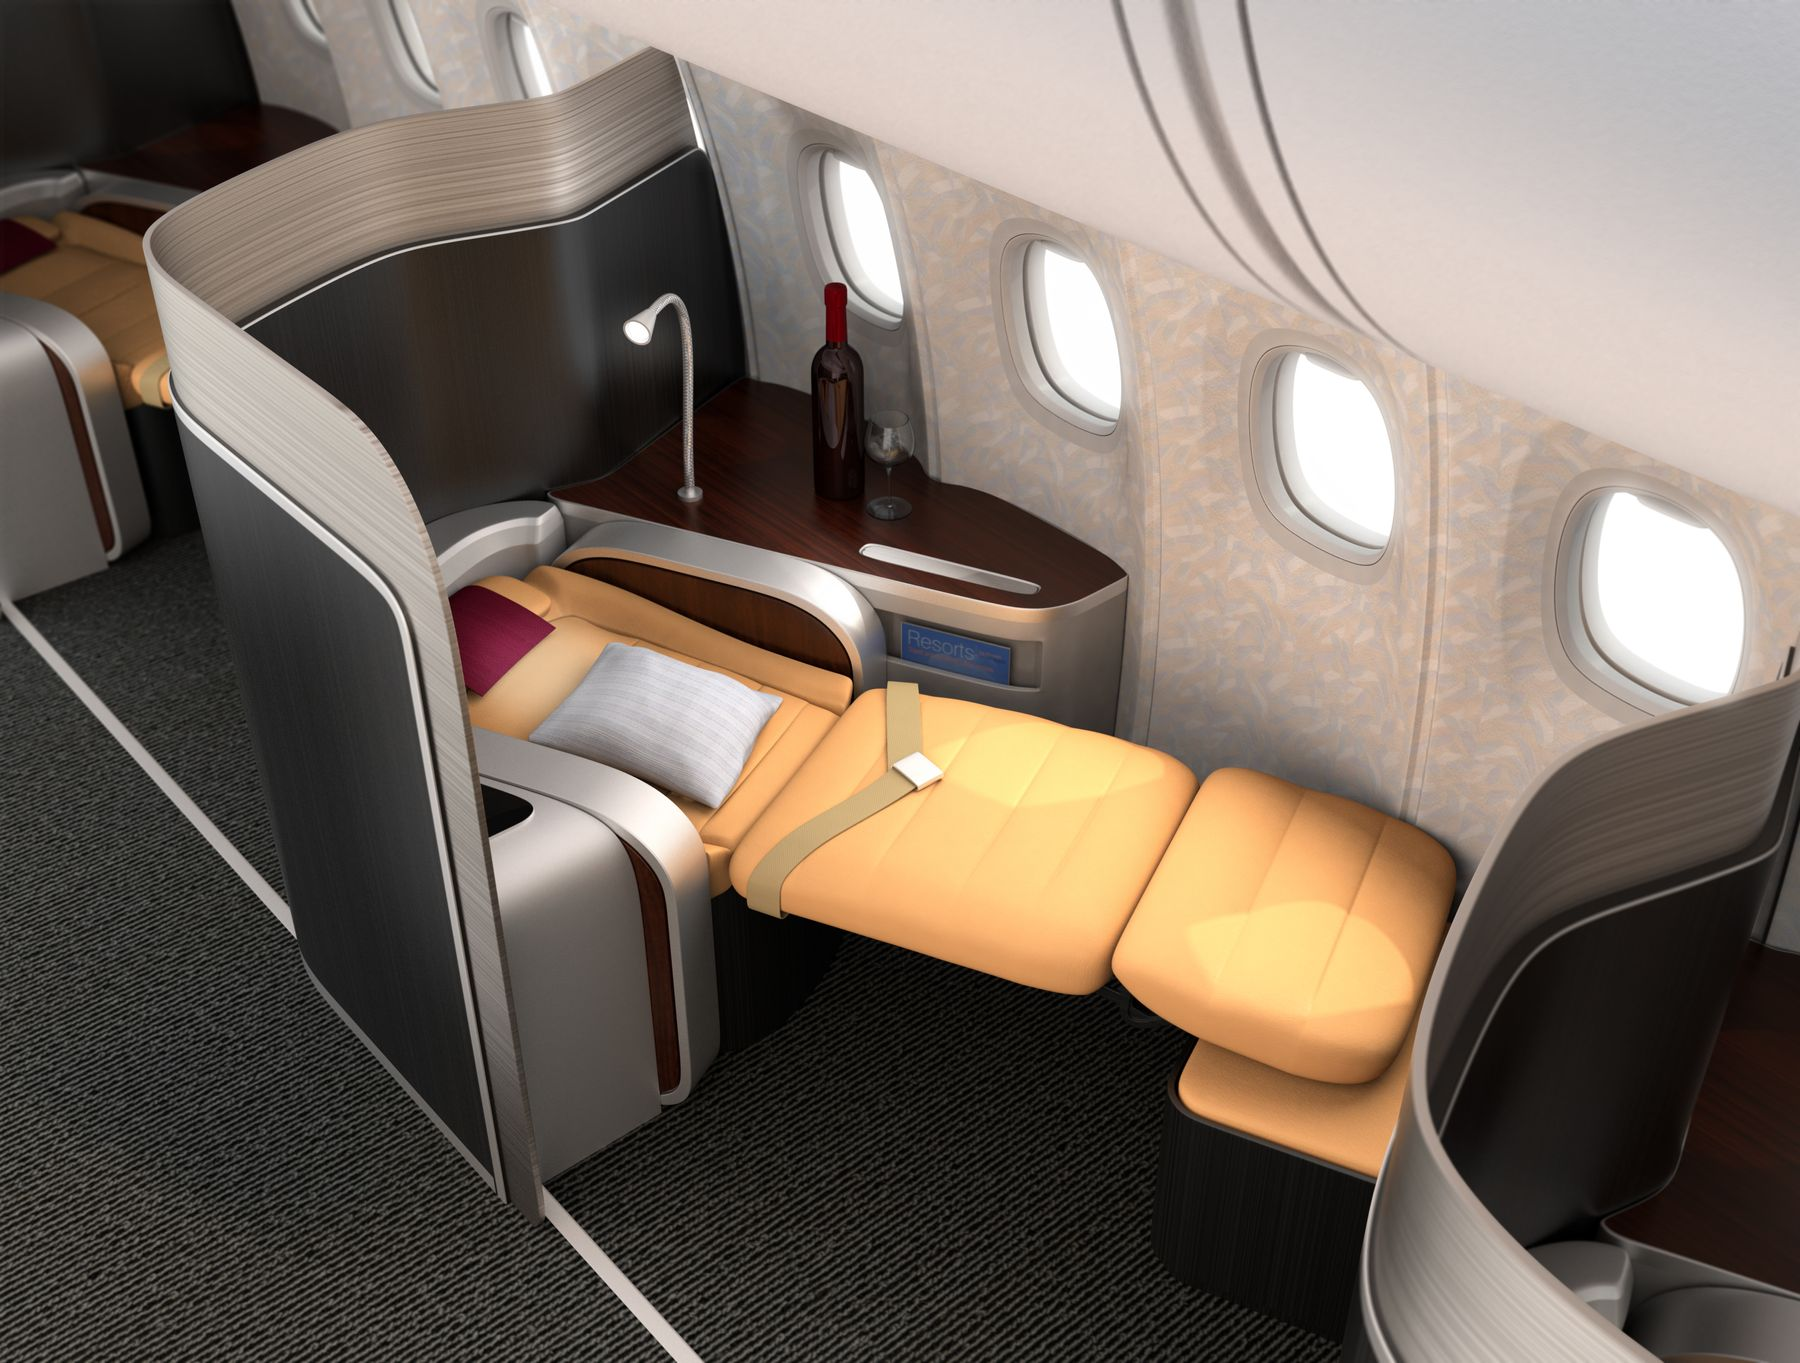 How To Get A Flight Upgrade 10 Ways To Get Bumped Up To